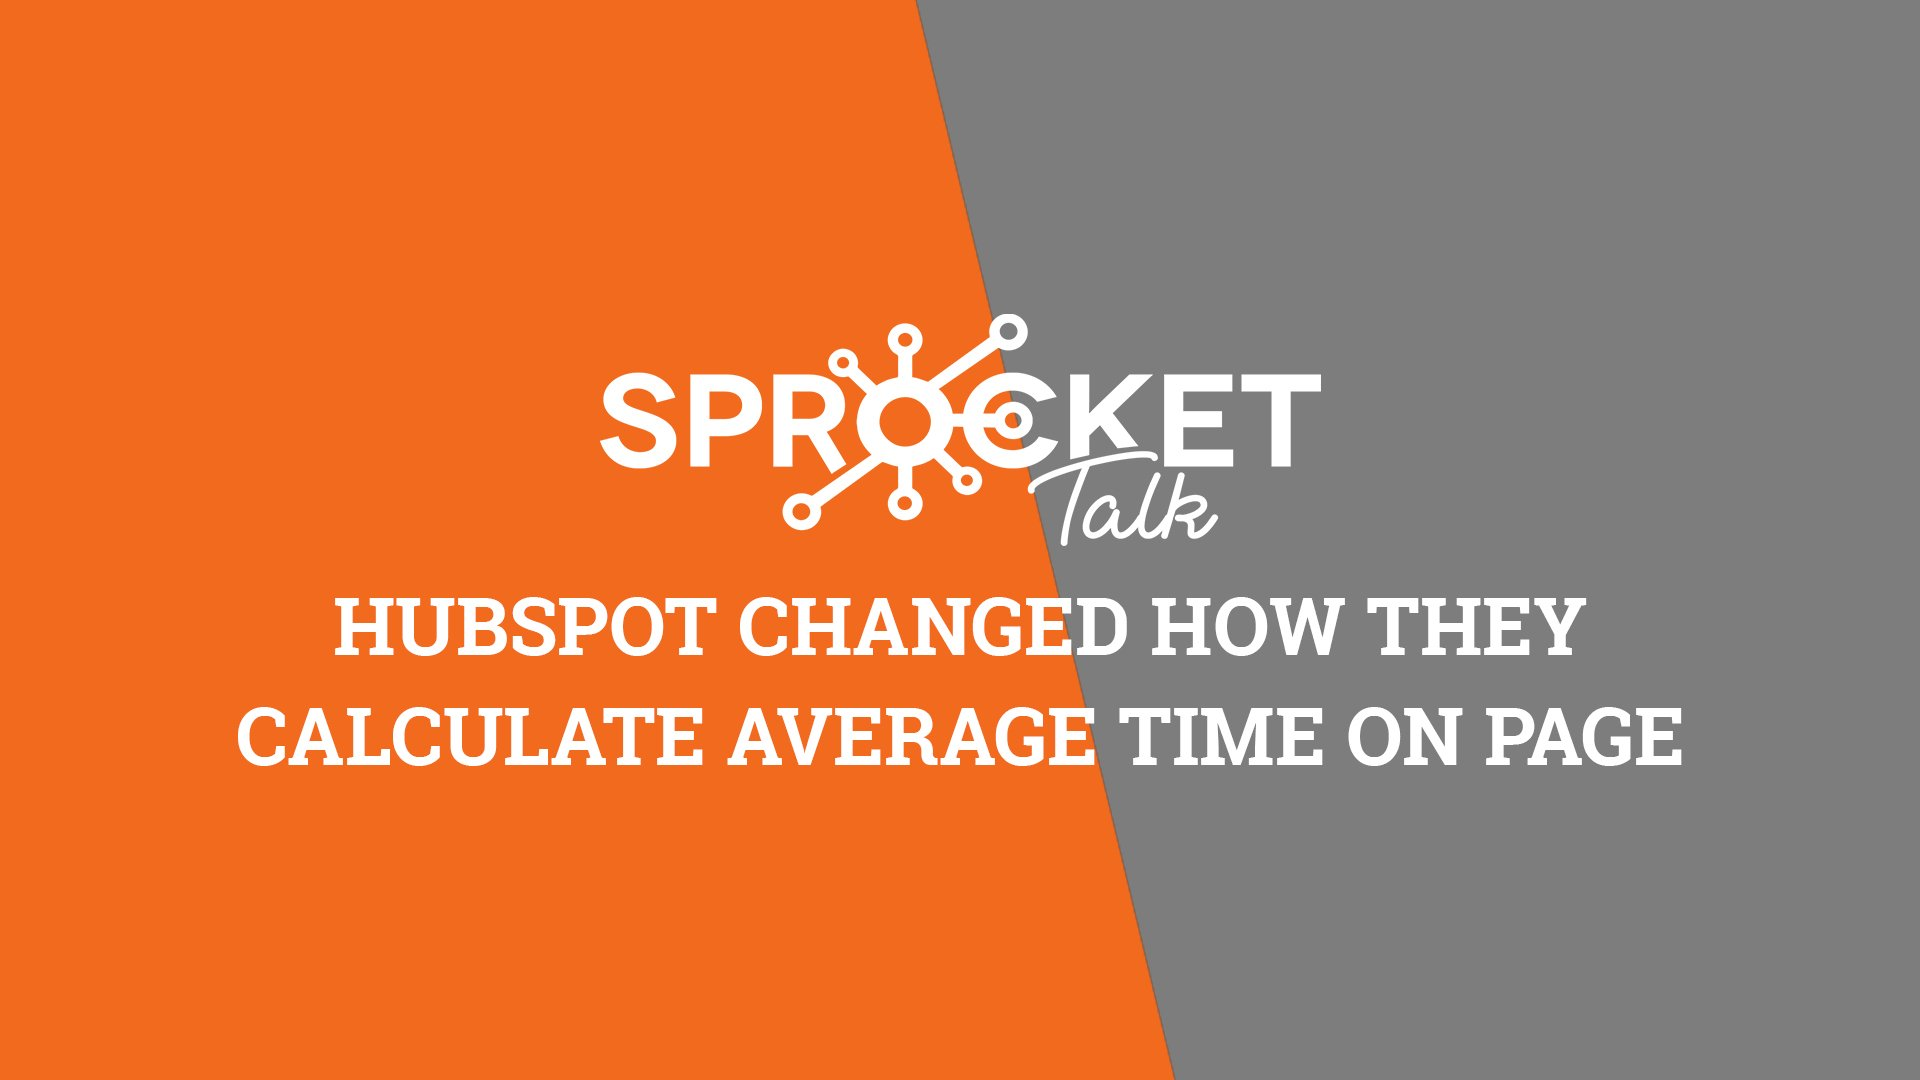 HubSpot Changed How They Calculate Average Time on Page